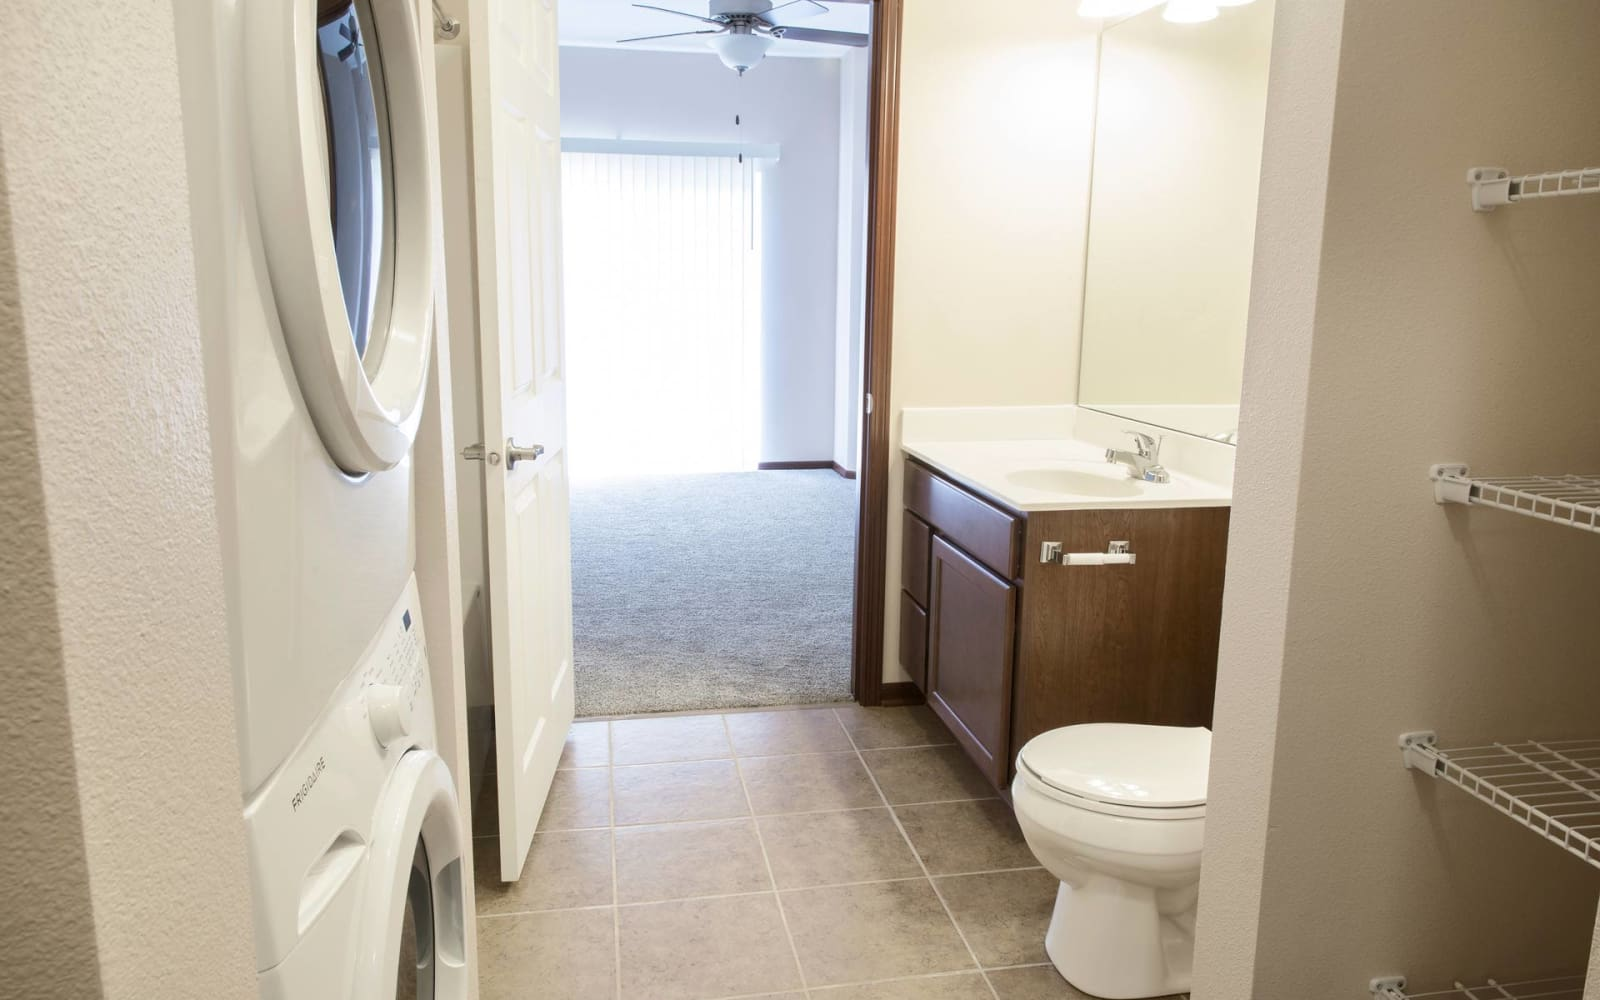 Apartment bathroom with storage space and a washer and dryer at Ironwood in Altoona, Iowa